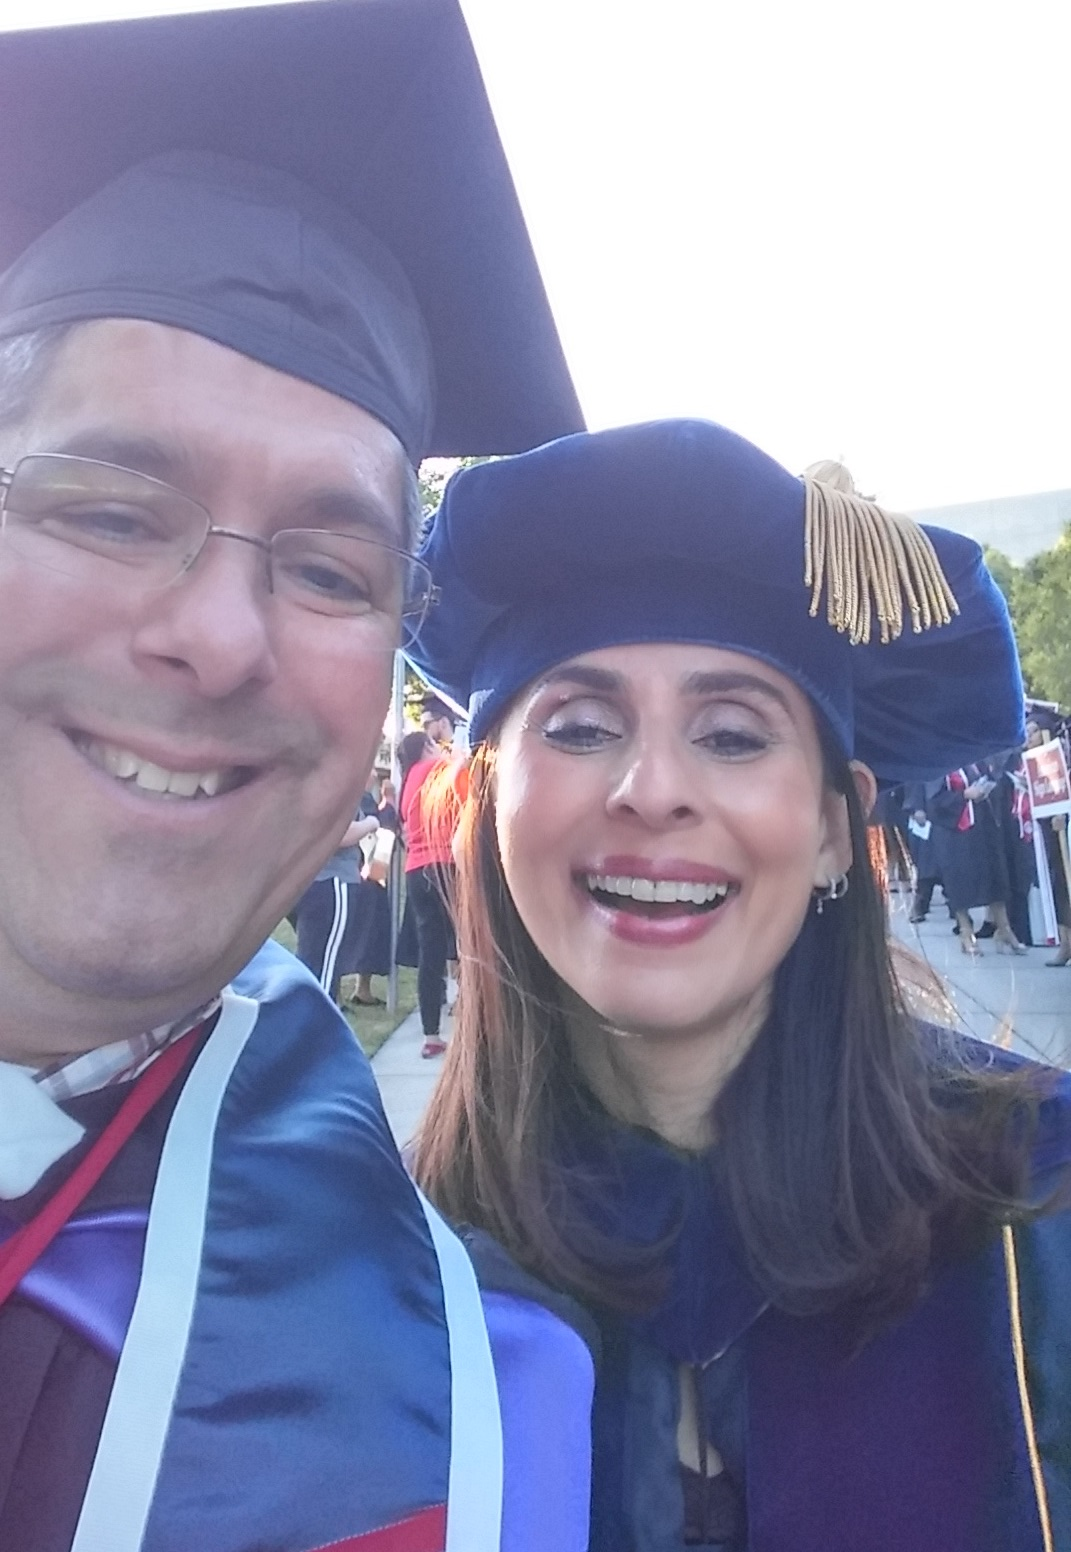 Paul Beckworth, Sonya Christian selfie May 11 2018 Commencement